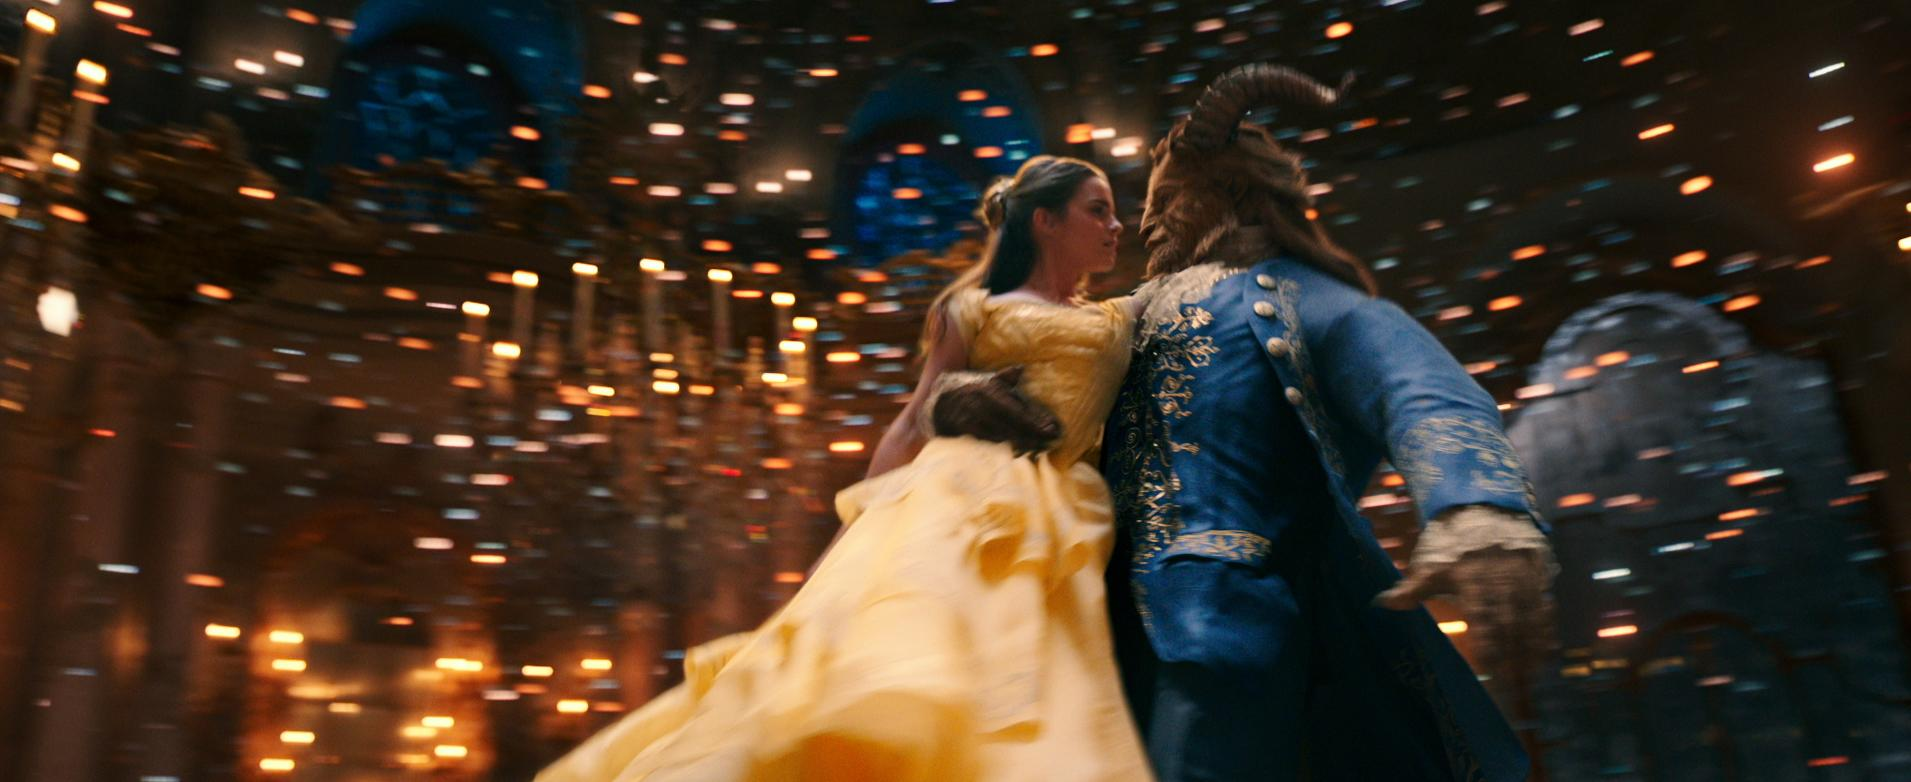 Belle (Emma Watson) comes to realize that underneath the hideous exterior of the Beast (Dan Stevens) there is the kind heart of a Prince in Disney's BEAUTY AND THE BEAST, a live-action adaptation of the studio's animated classic directed by Bill Condon. (Credit: Disney)